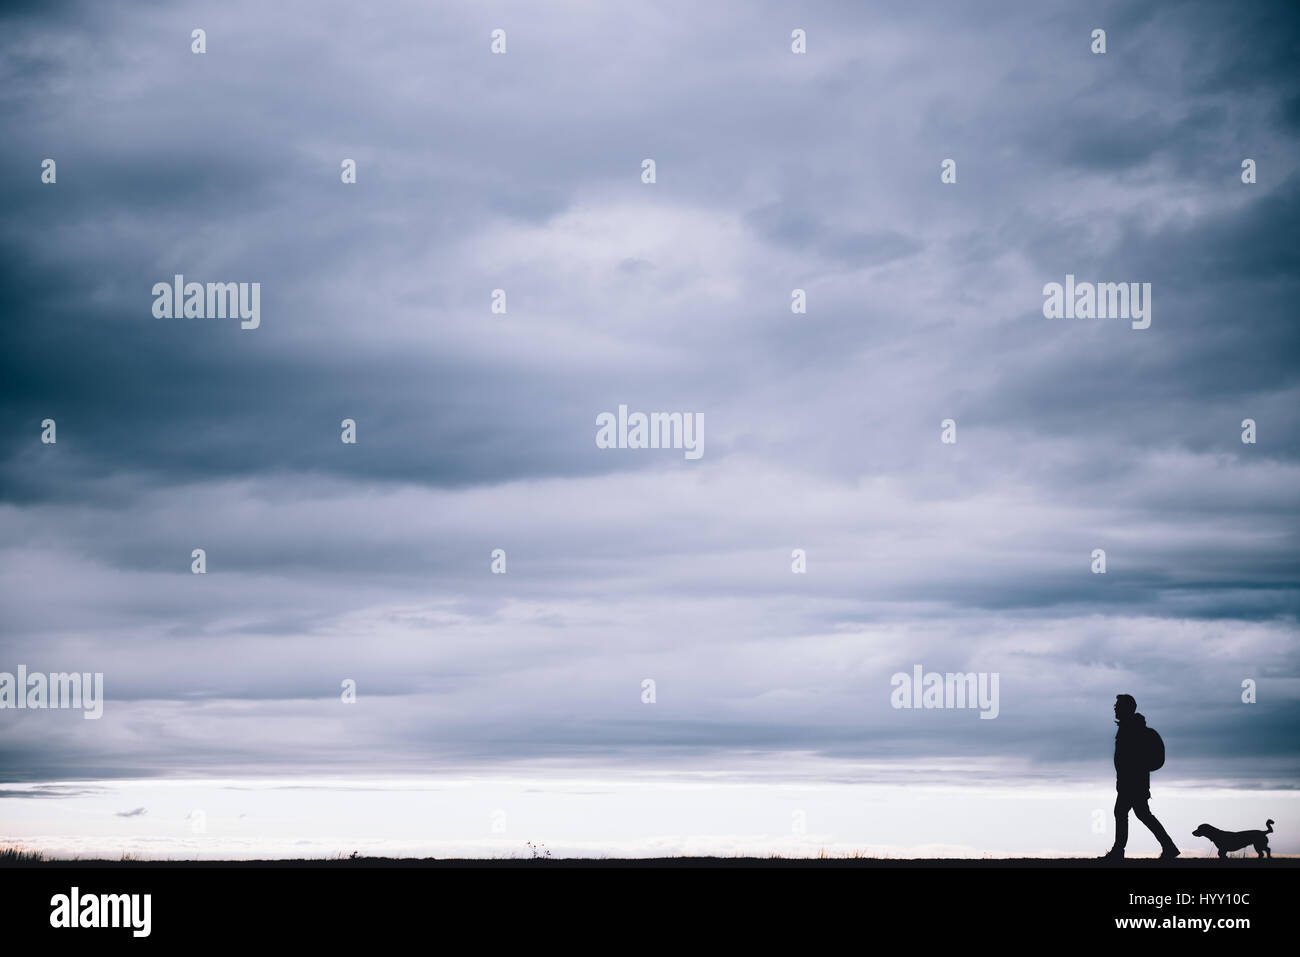 Silhouette of hiker and dog walking together - Stock Image